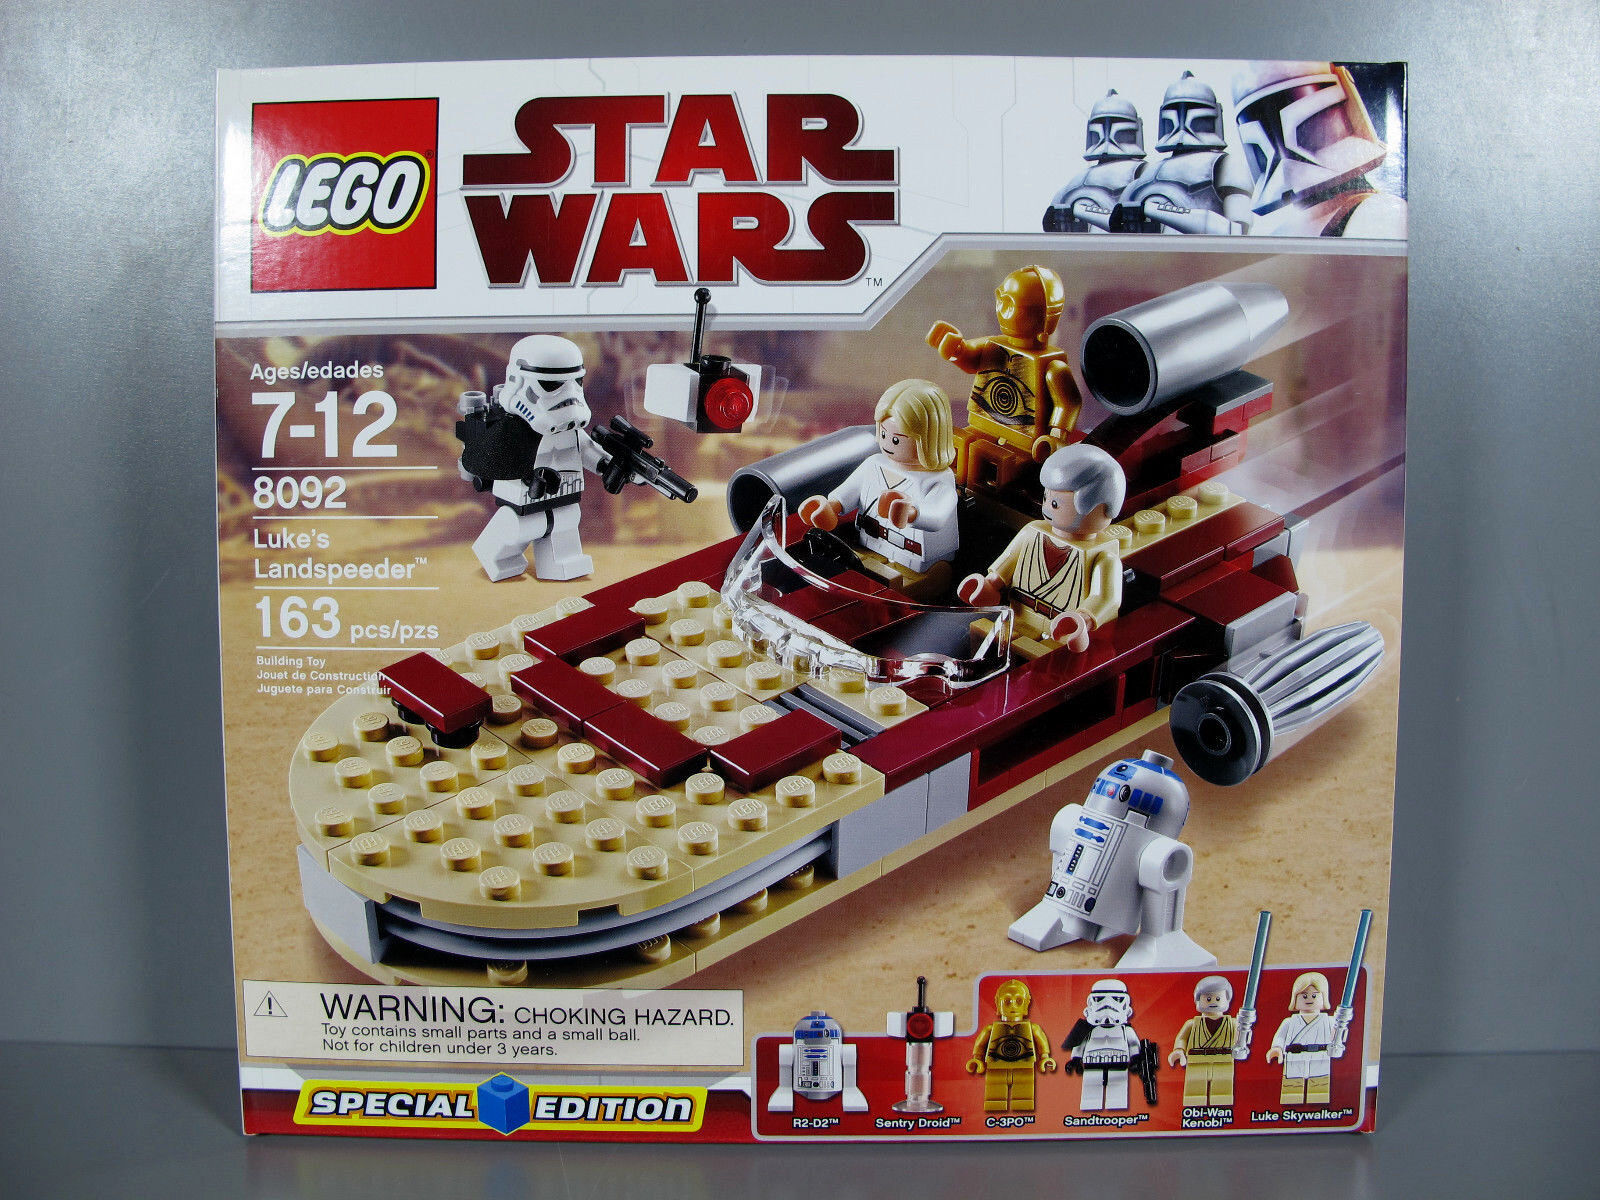 NEW Sealed Lego STAR WARS Special Edition Luke's Landspeeder RETIRED